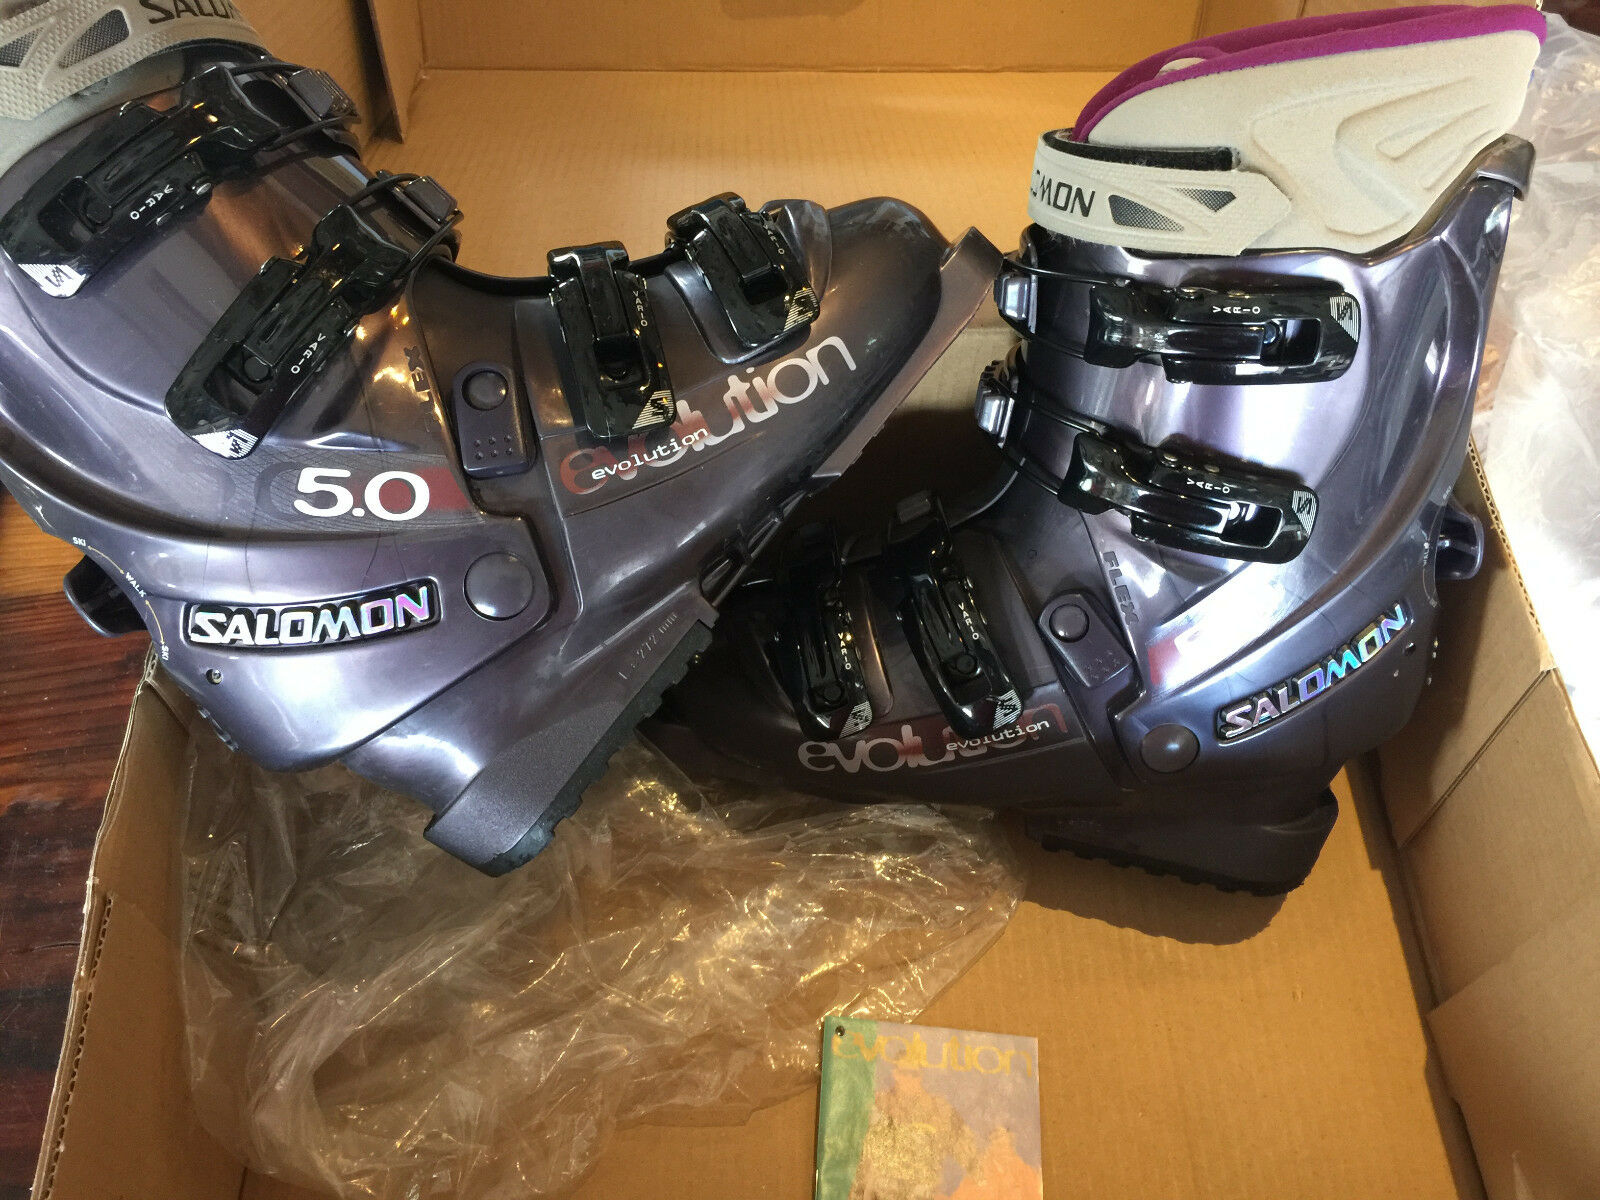 Salomon Evolution 5.0 Lady Women's Downhill Ski Skiing Boots Size 23.5 US 6-6.5